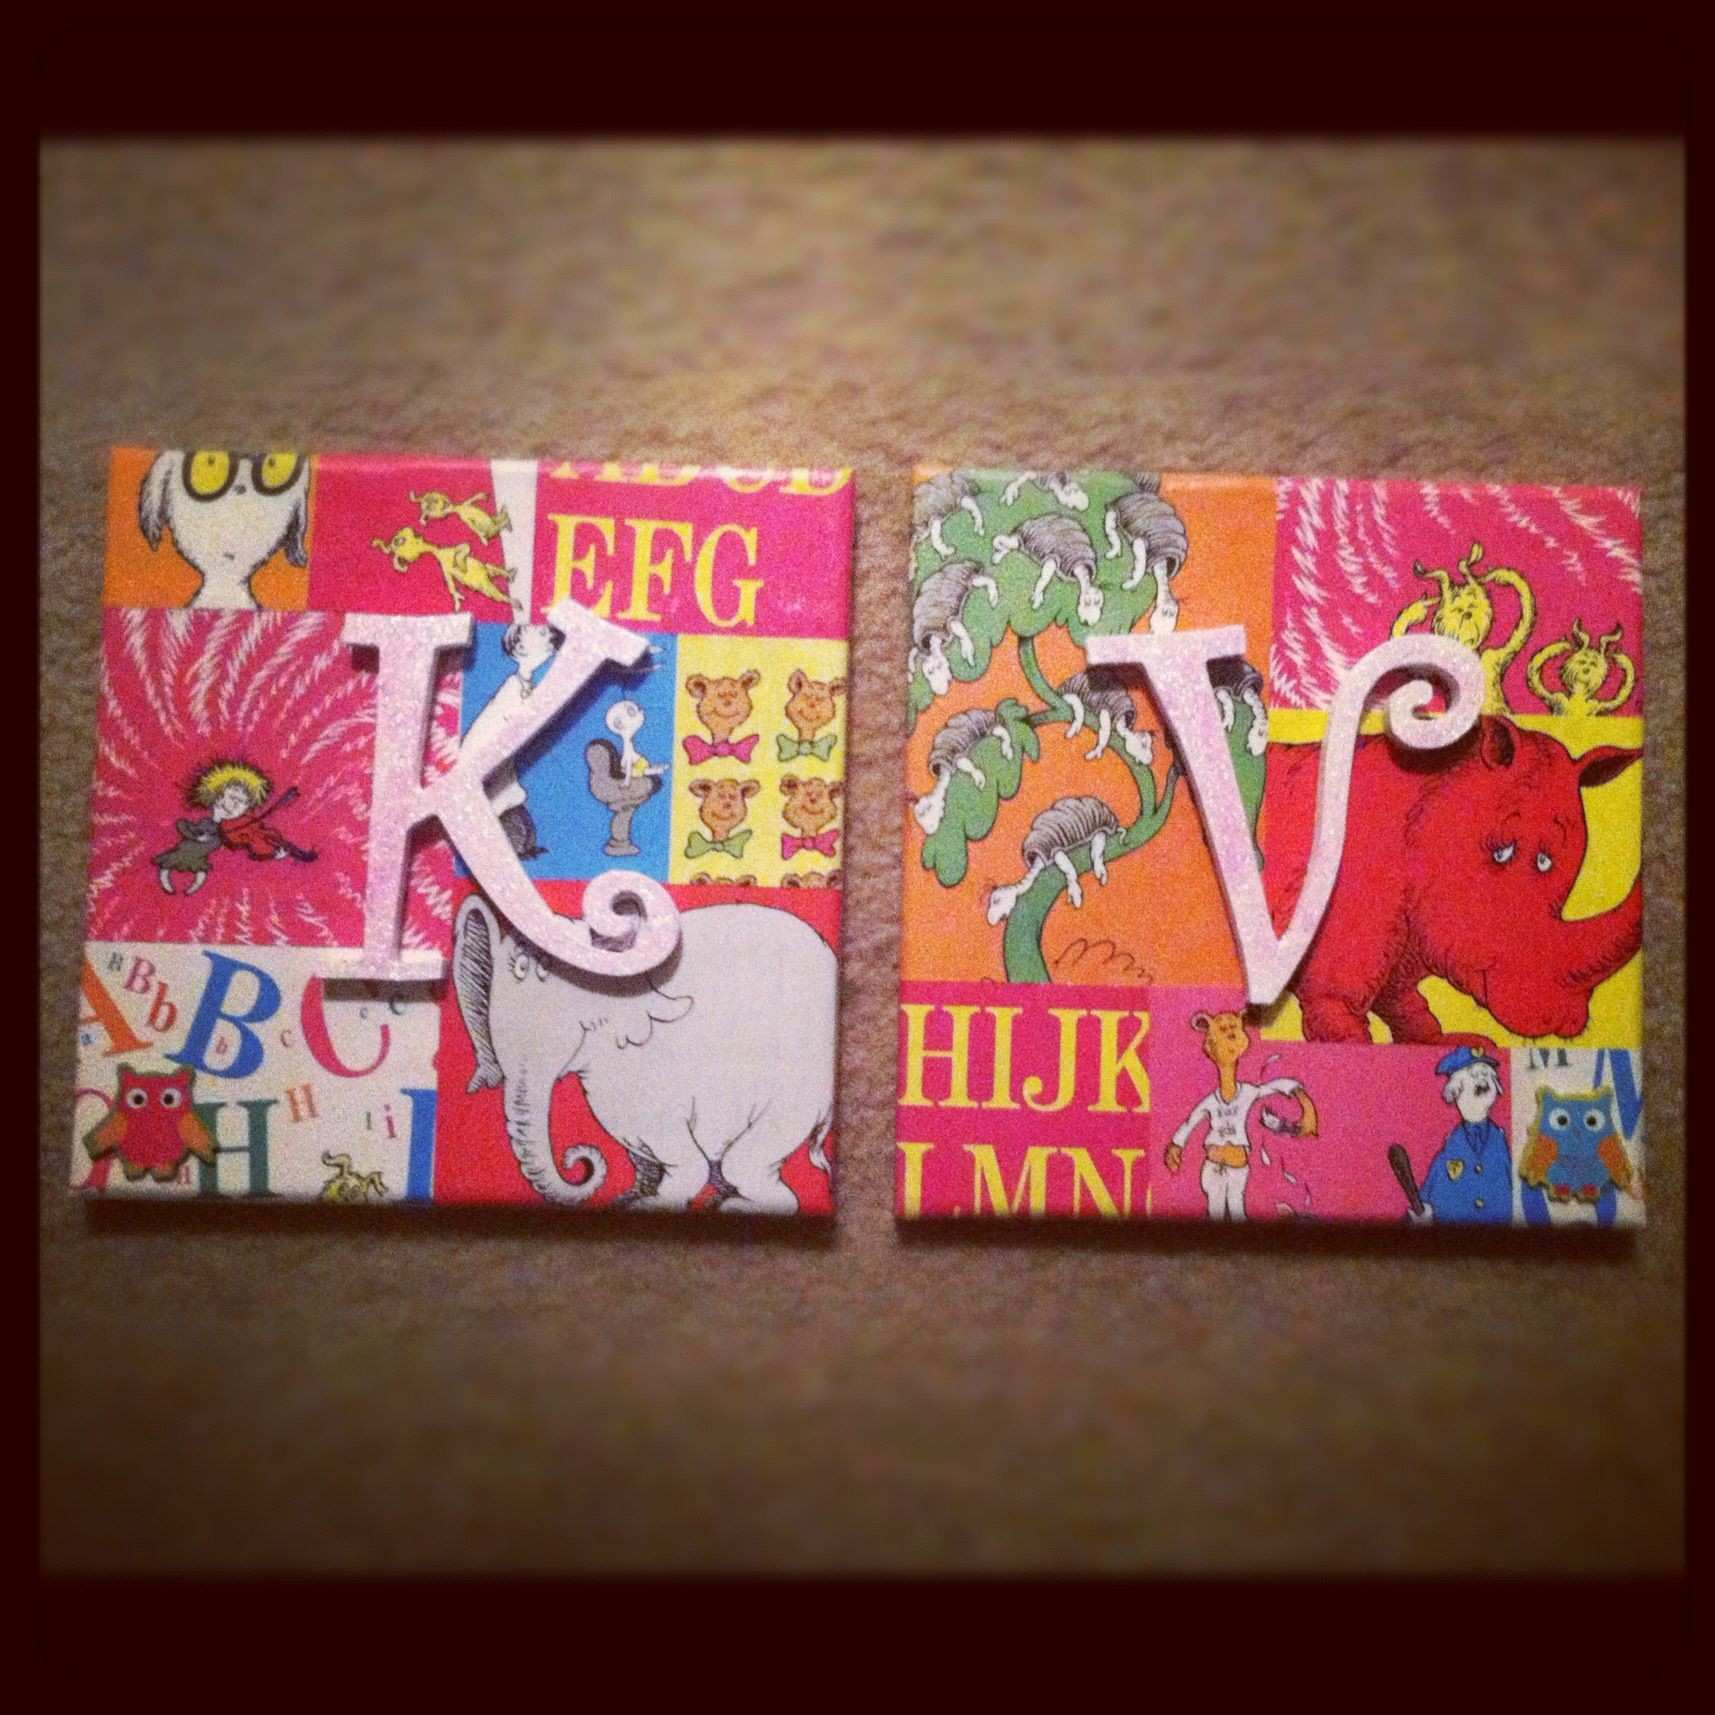 Dr Seuss book pages mod poged on canvas with wooden letters